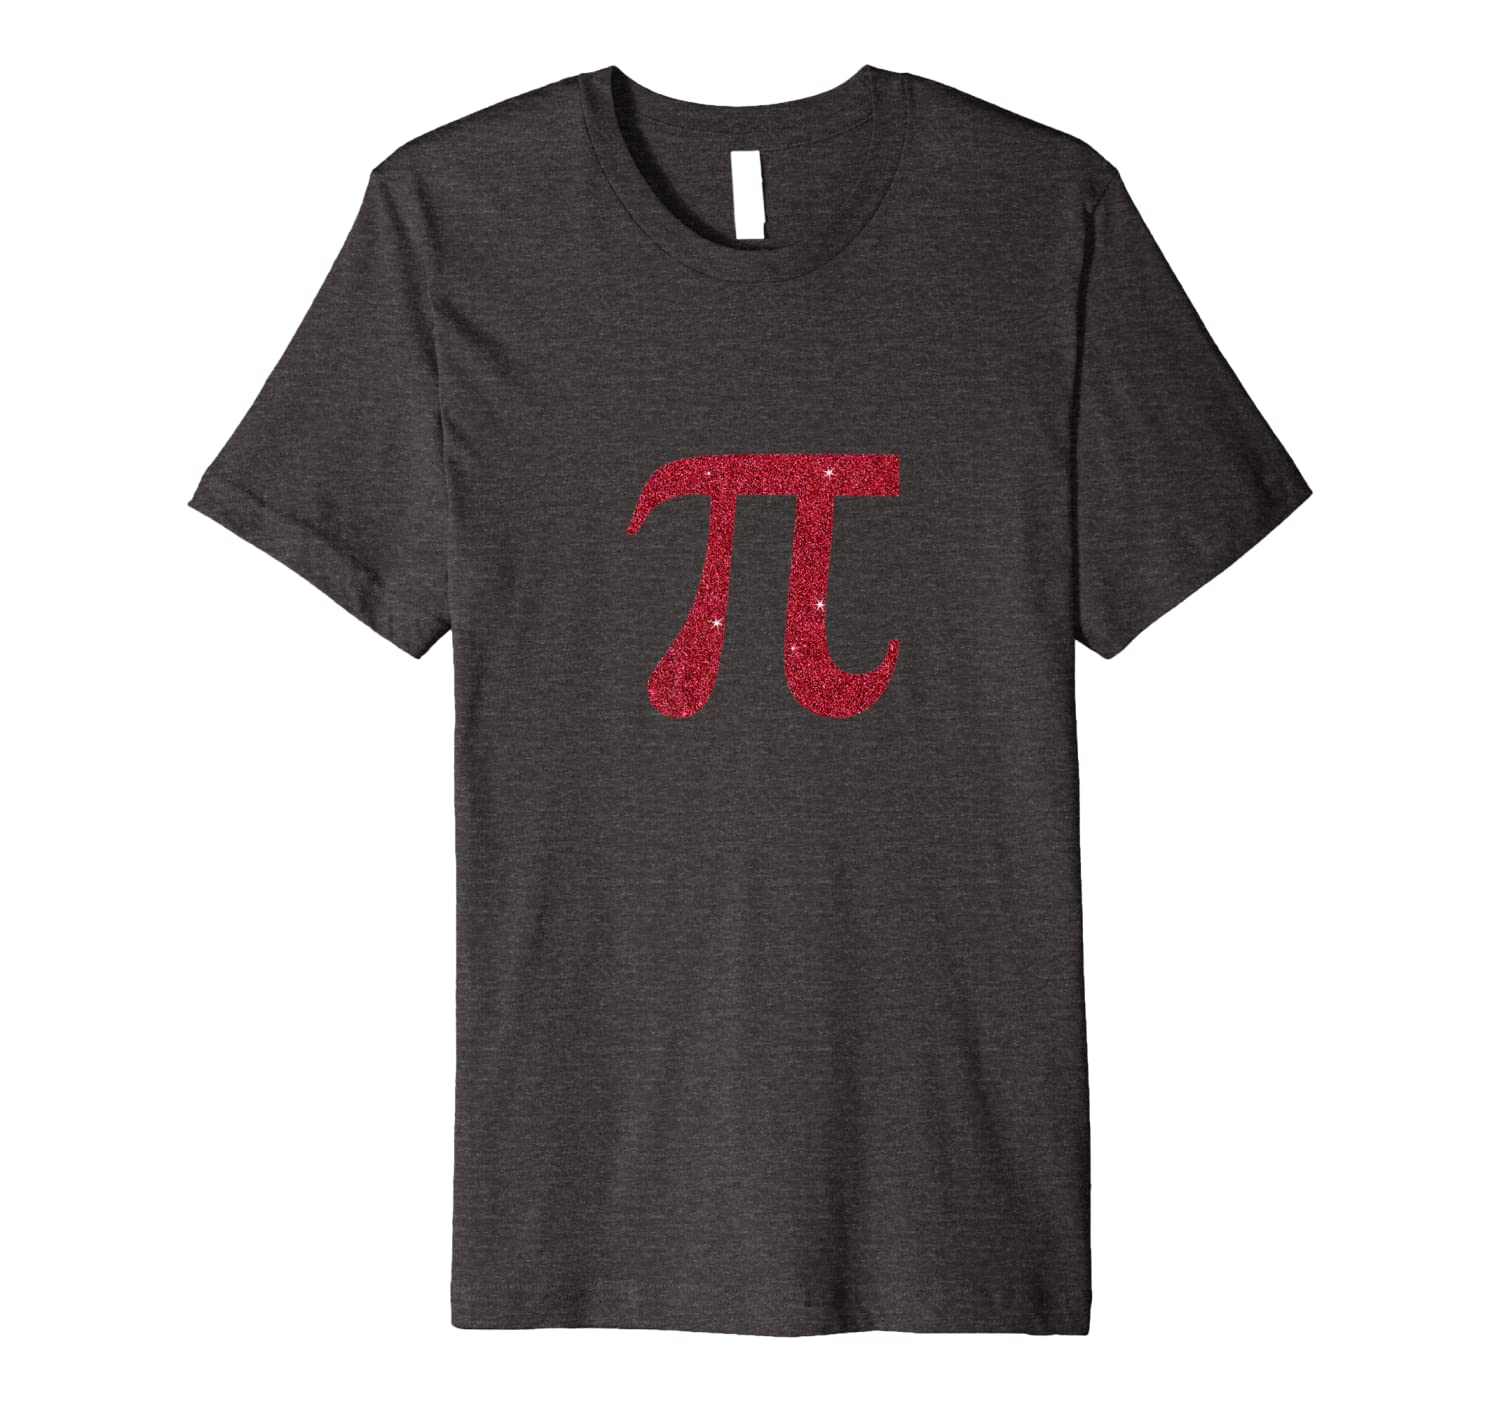 Pi 3.141 Red Glitter Effect Shirt-Awarplus